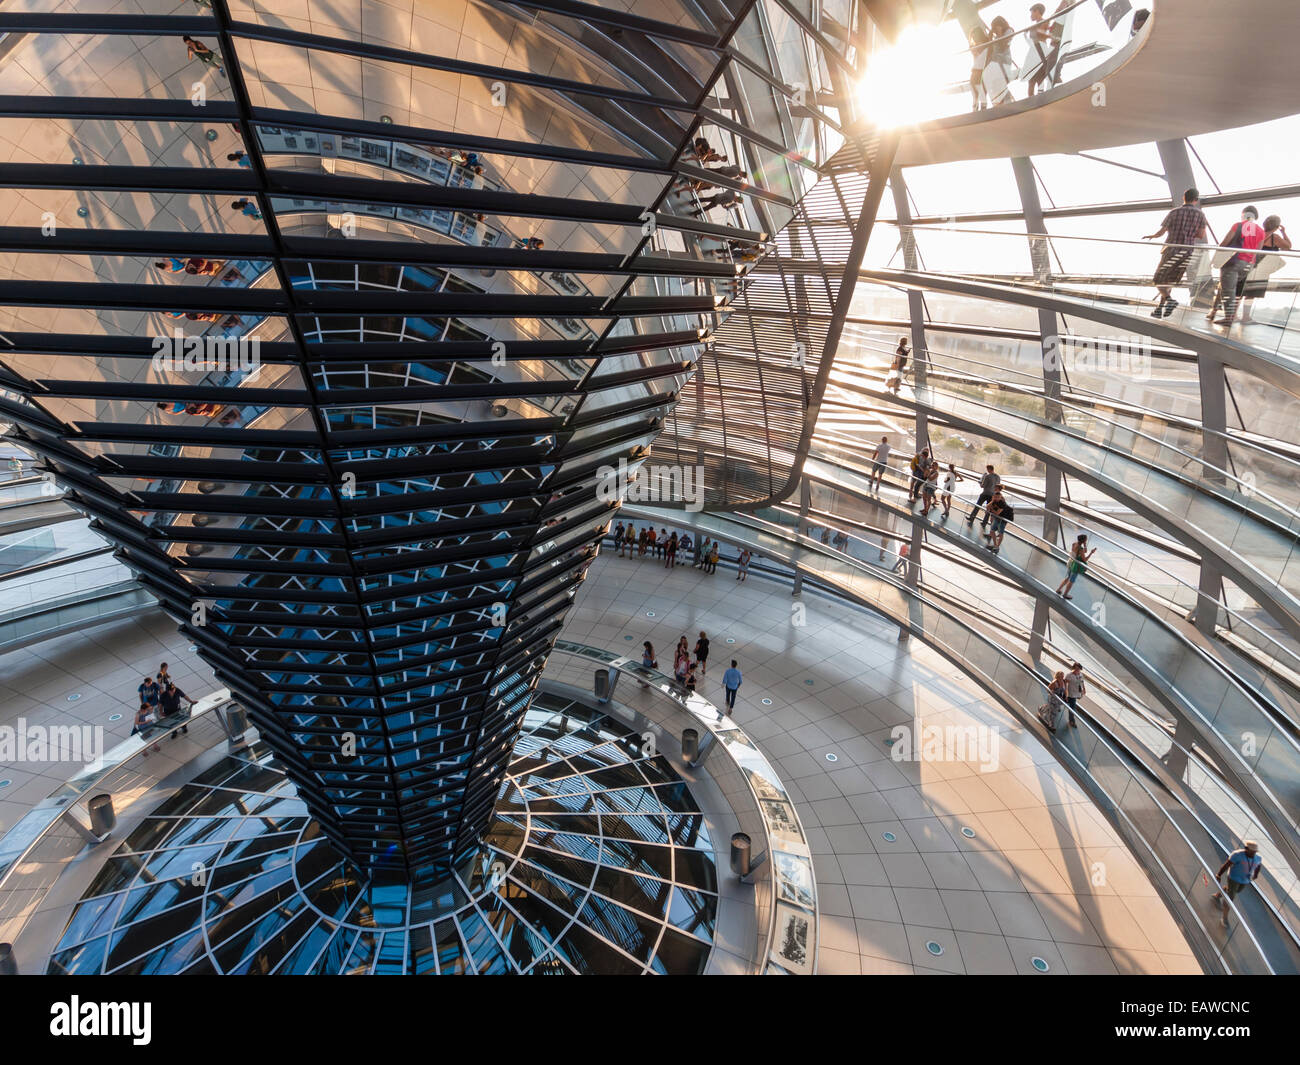 Glass dome on top of berlin reichstag the german house of parliament designed by architect sir norman foster